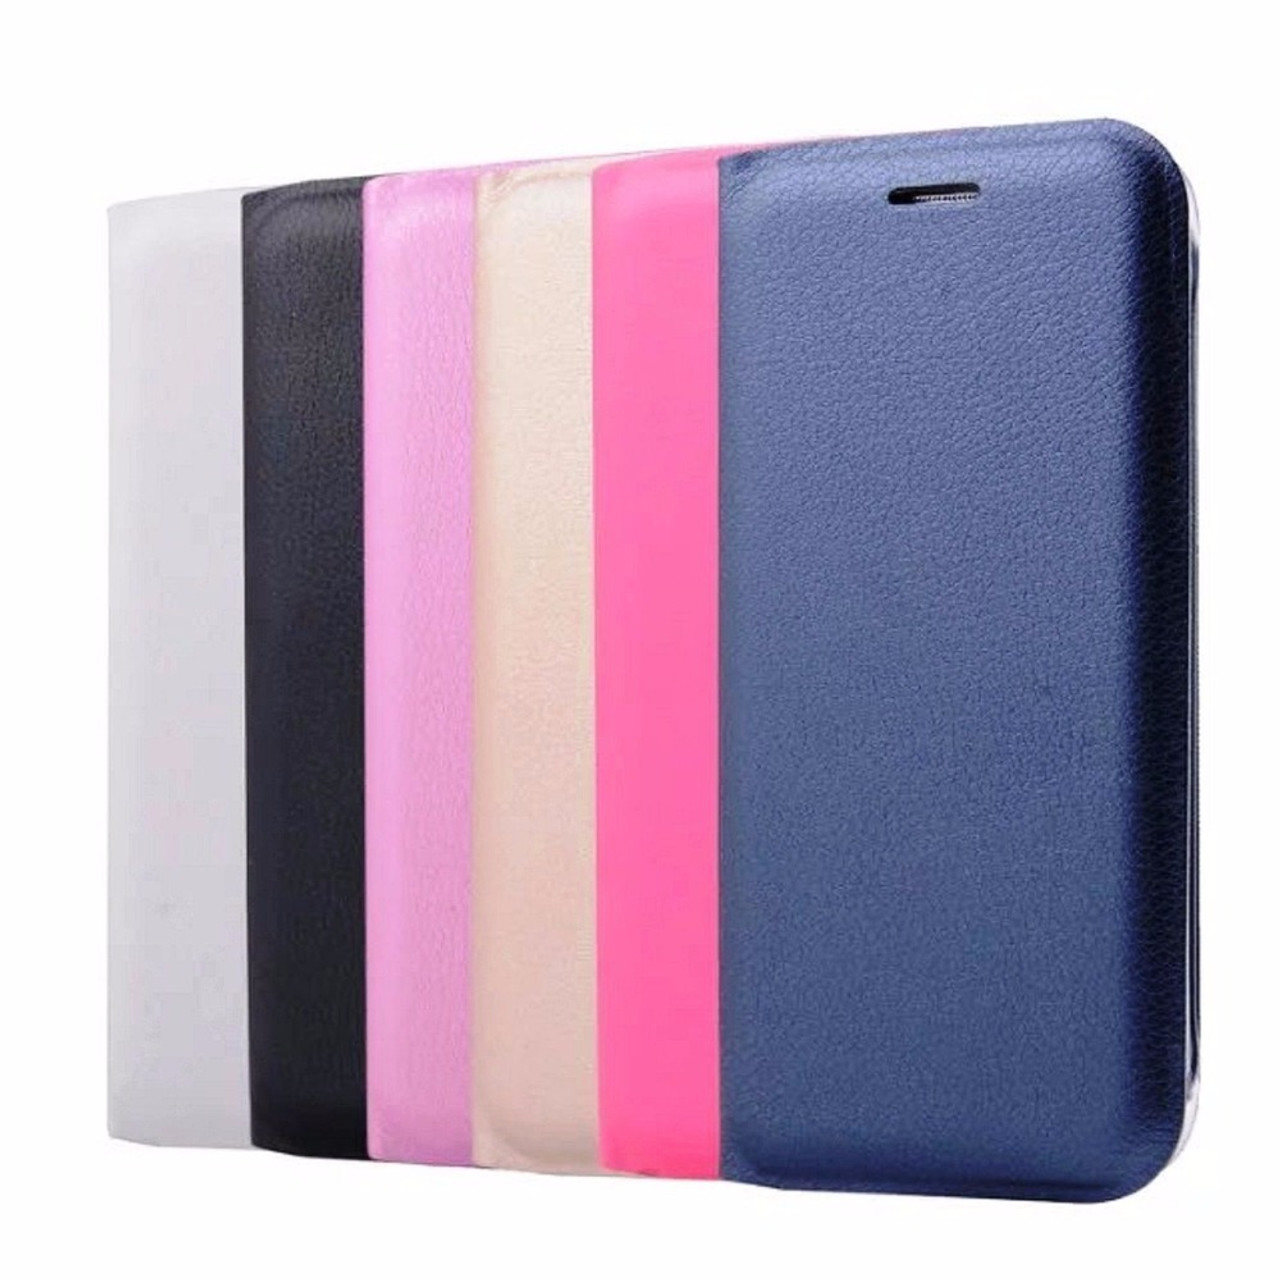 Flip Wallet Leather Case For Samsung Galaxy A5 A7 A8 2018 A3 J3 J5 Original Clear Cover Casing 2016 A510 J7